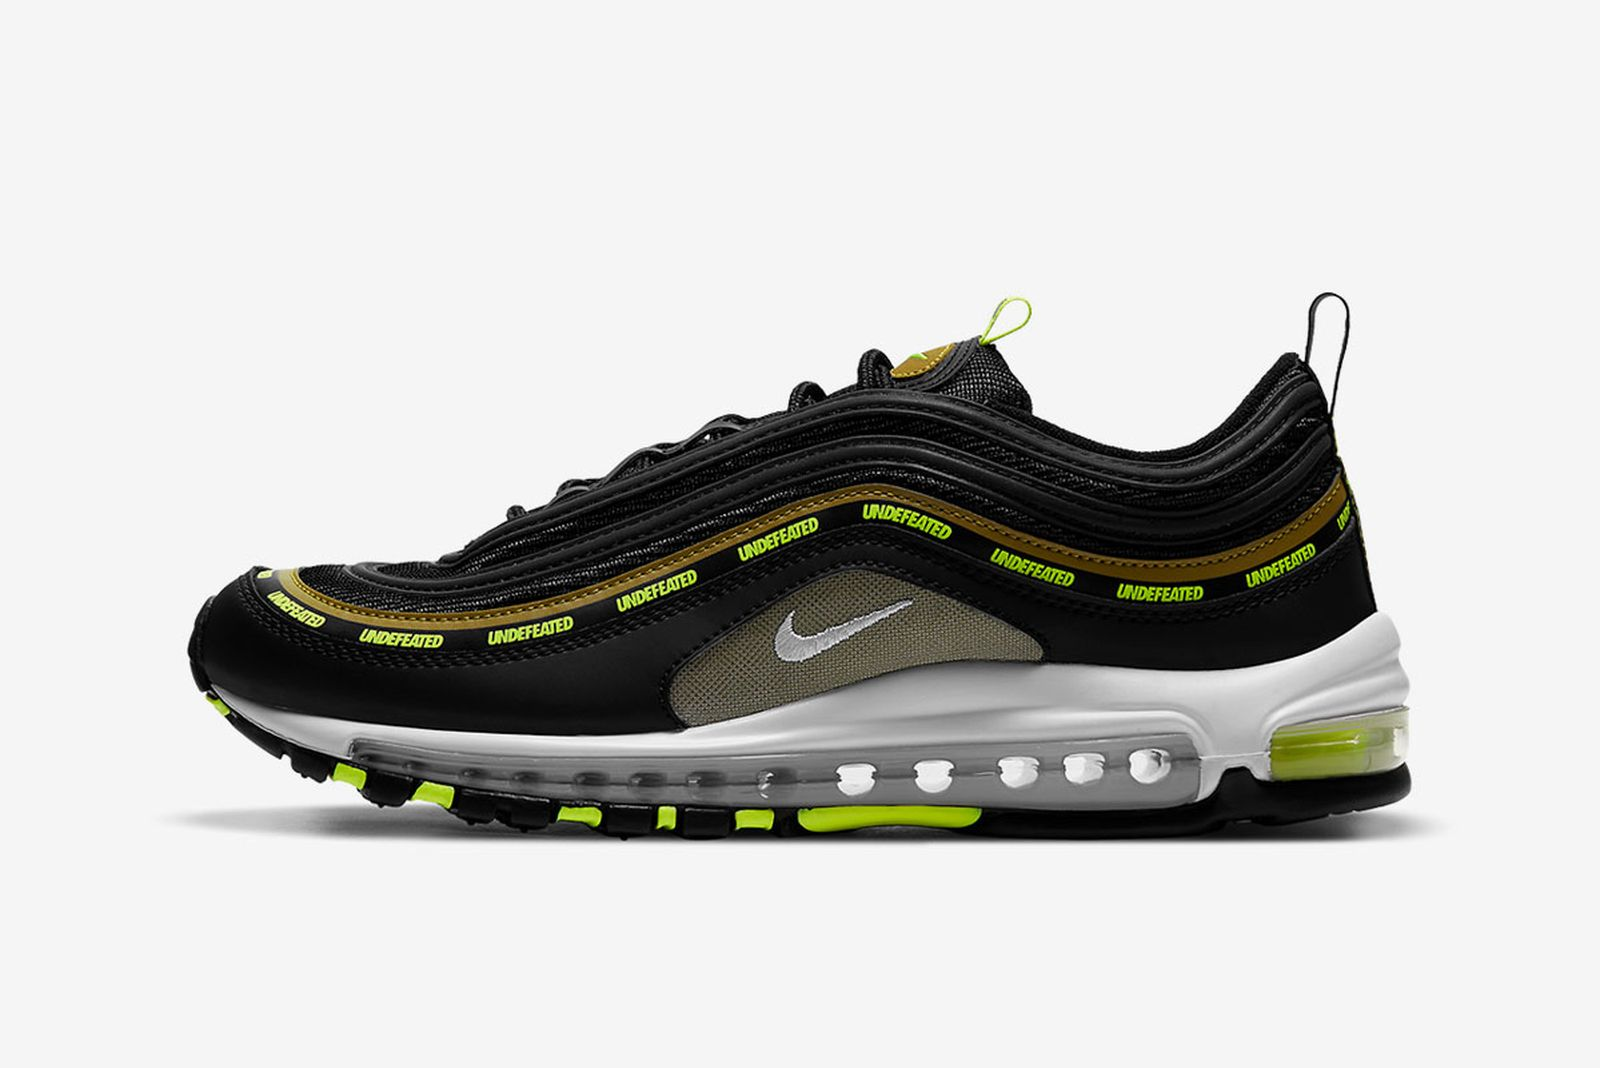 undefeated-nike-air-max-97-release-date-price-06